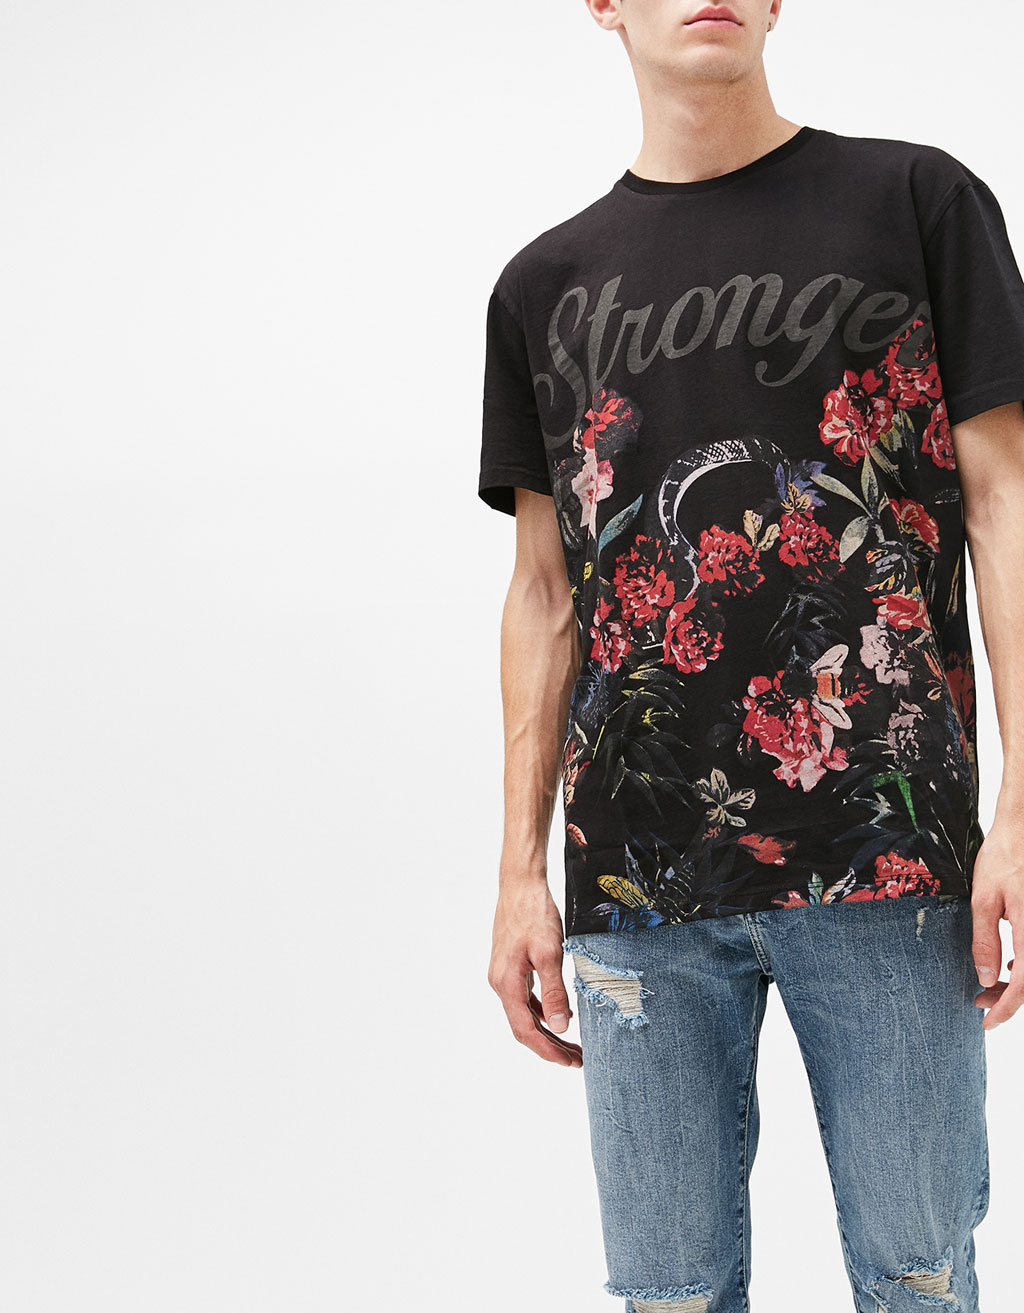 'Stronger' T-shirt with floral print